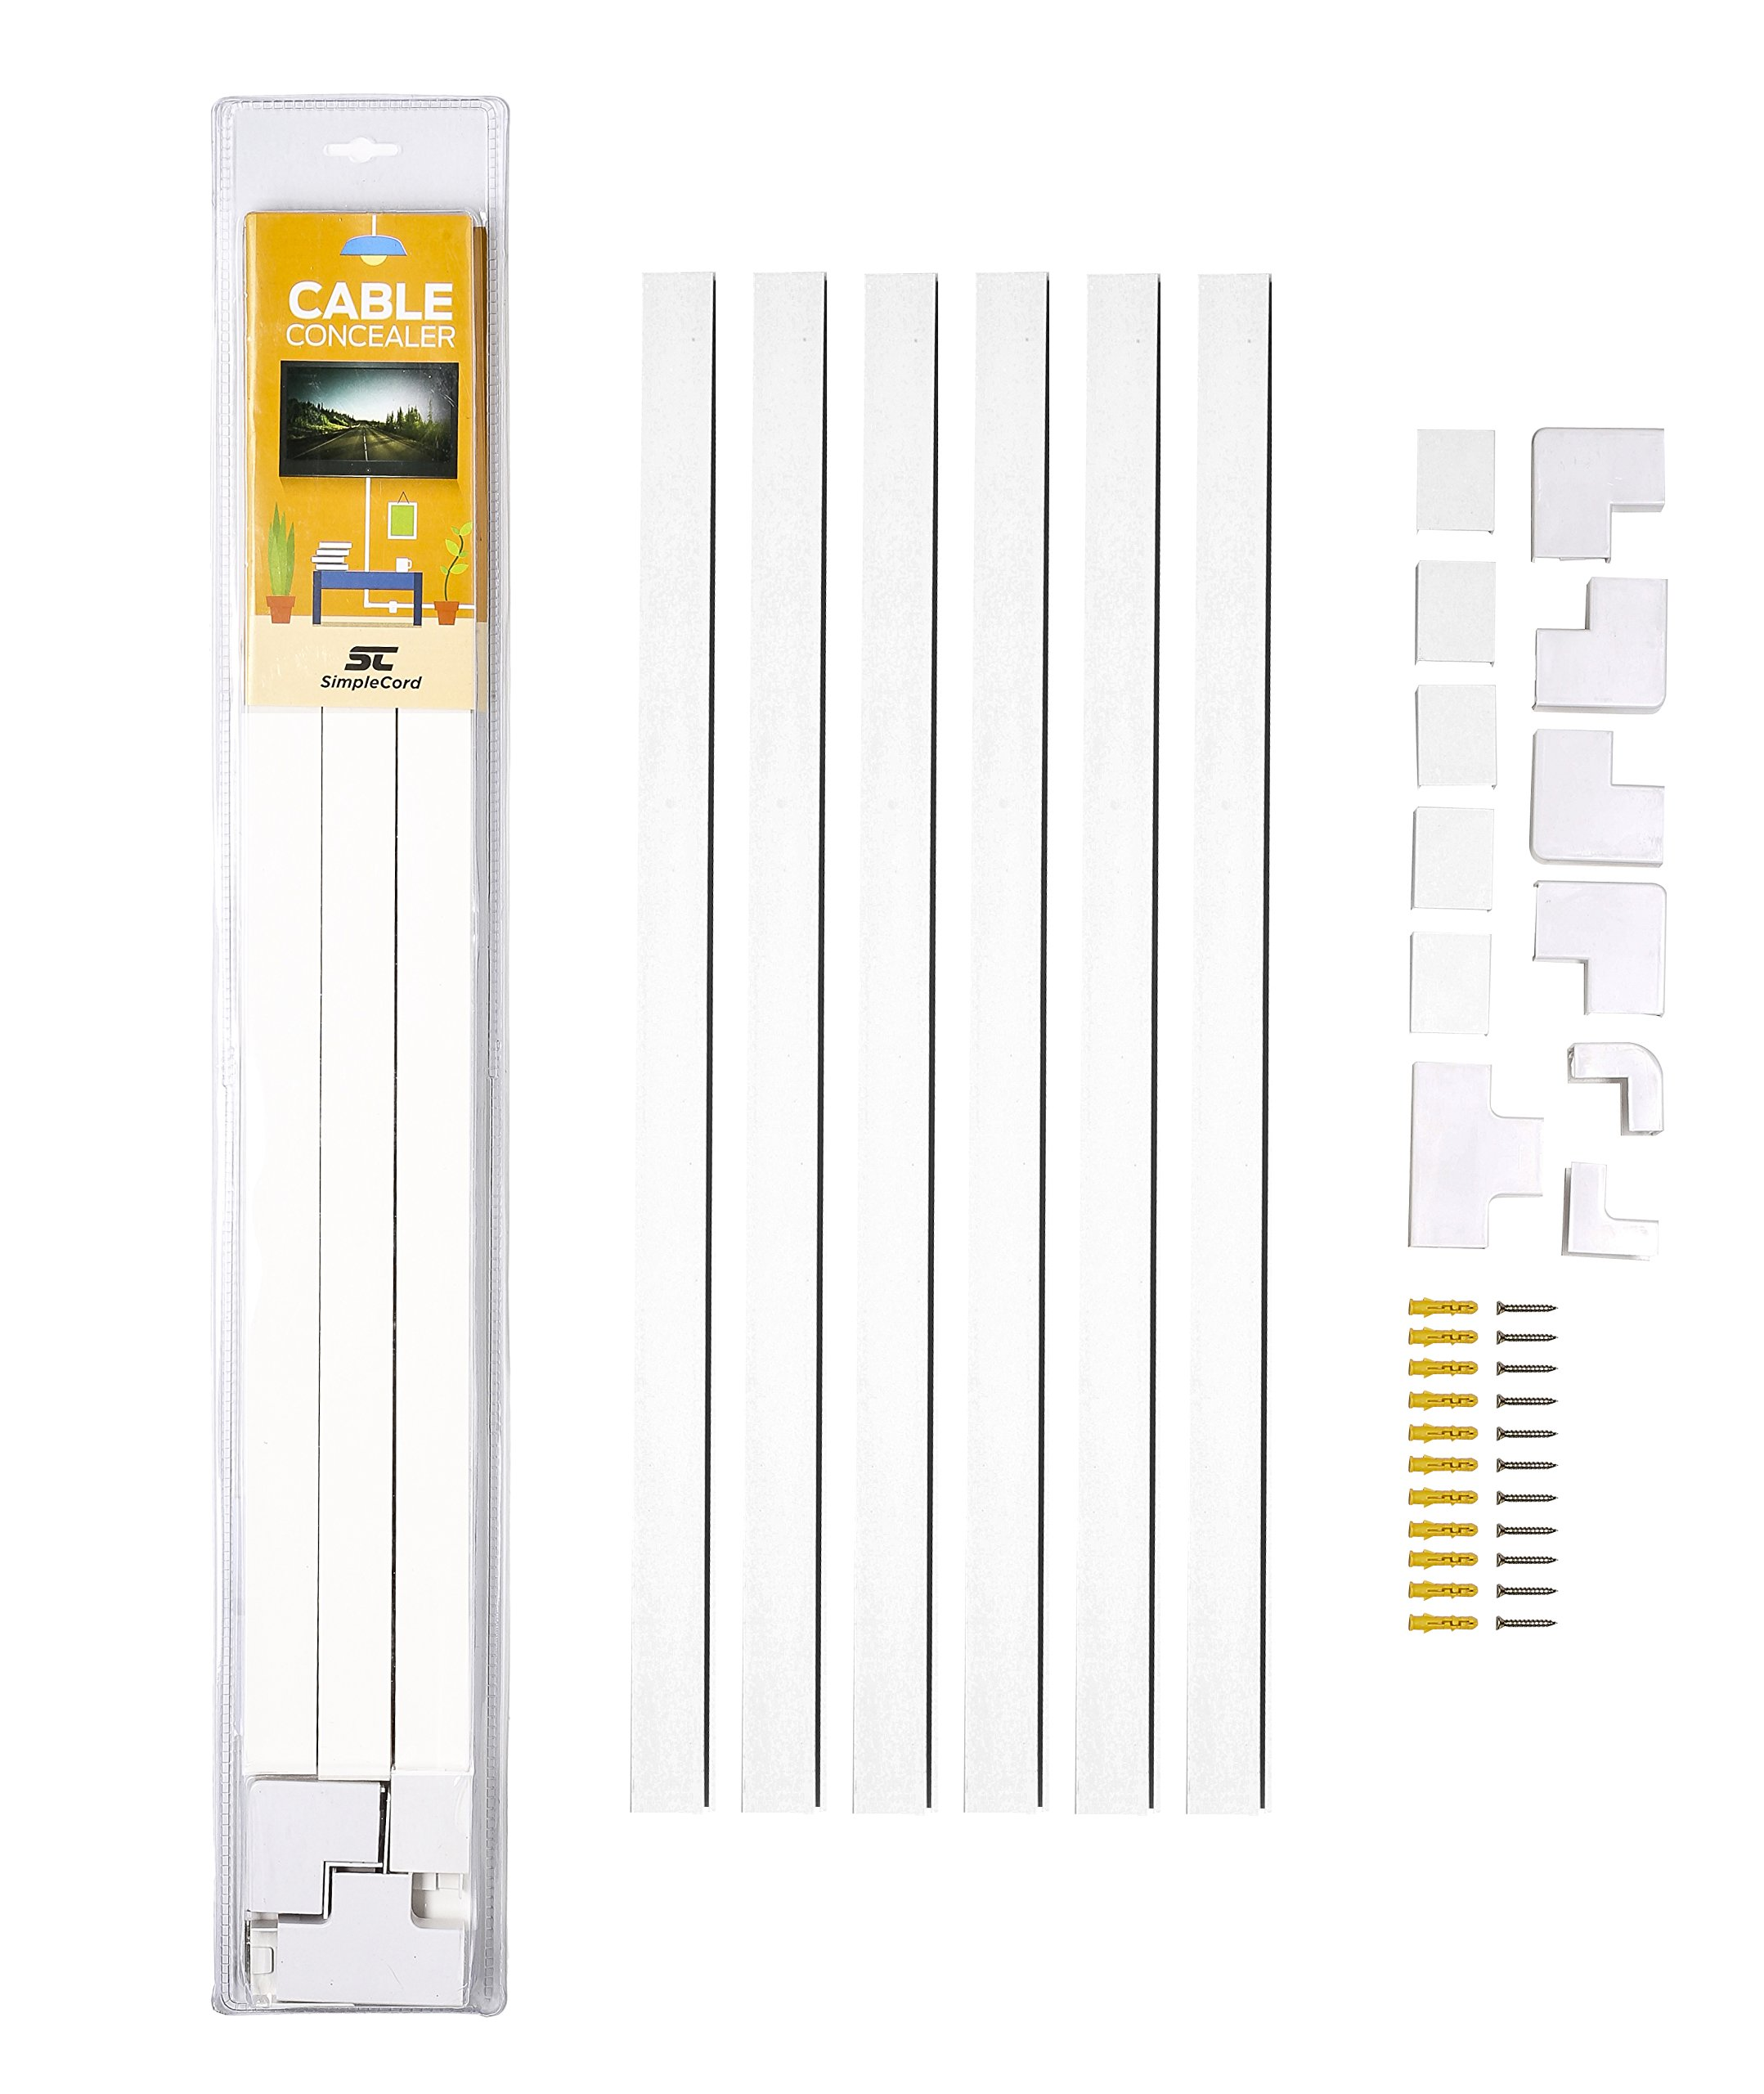 Cable Concealer On-Wall Cord Cover Raceway Kit - Cable Management System to Hide  Cables